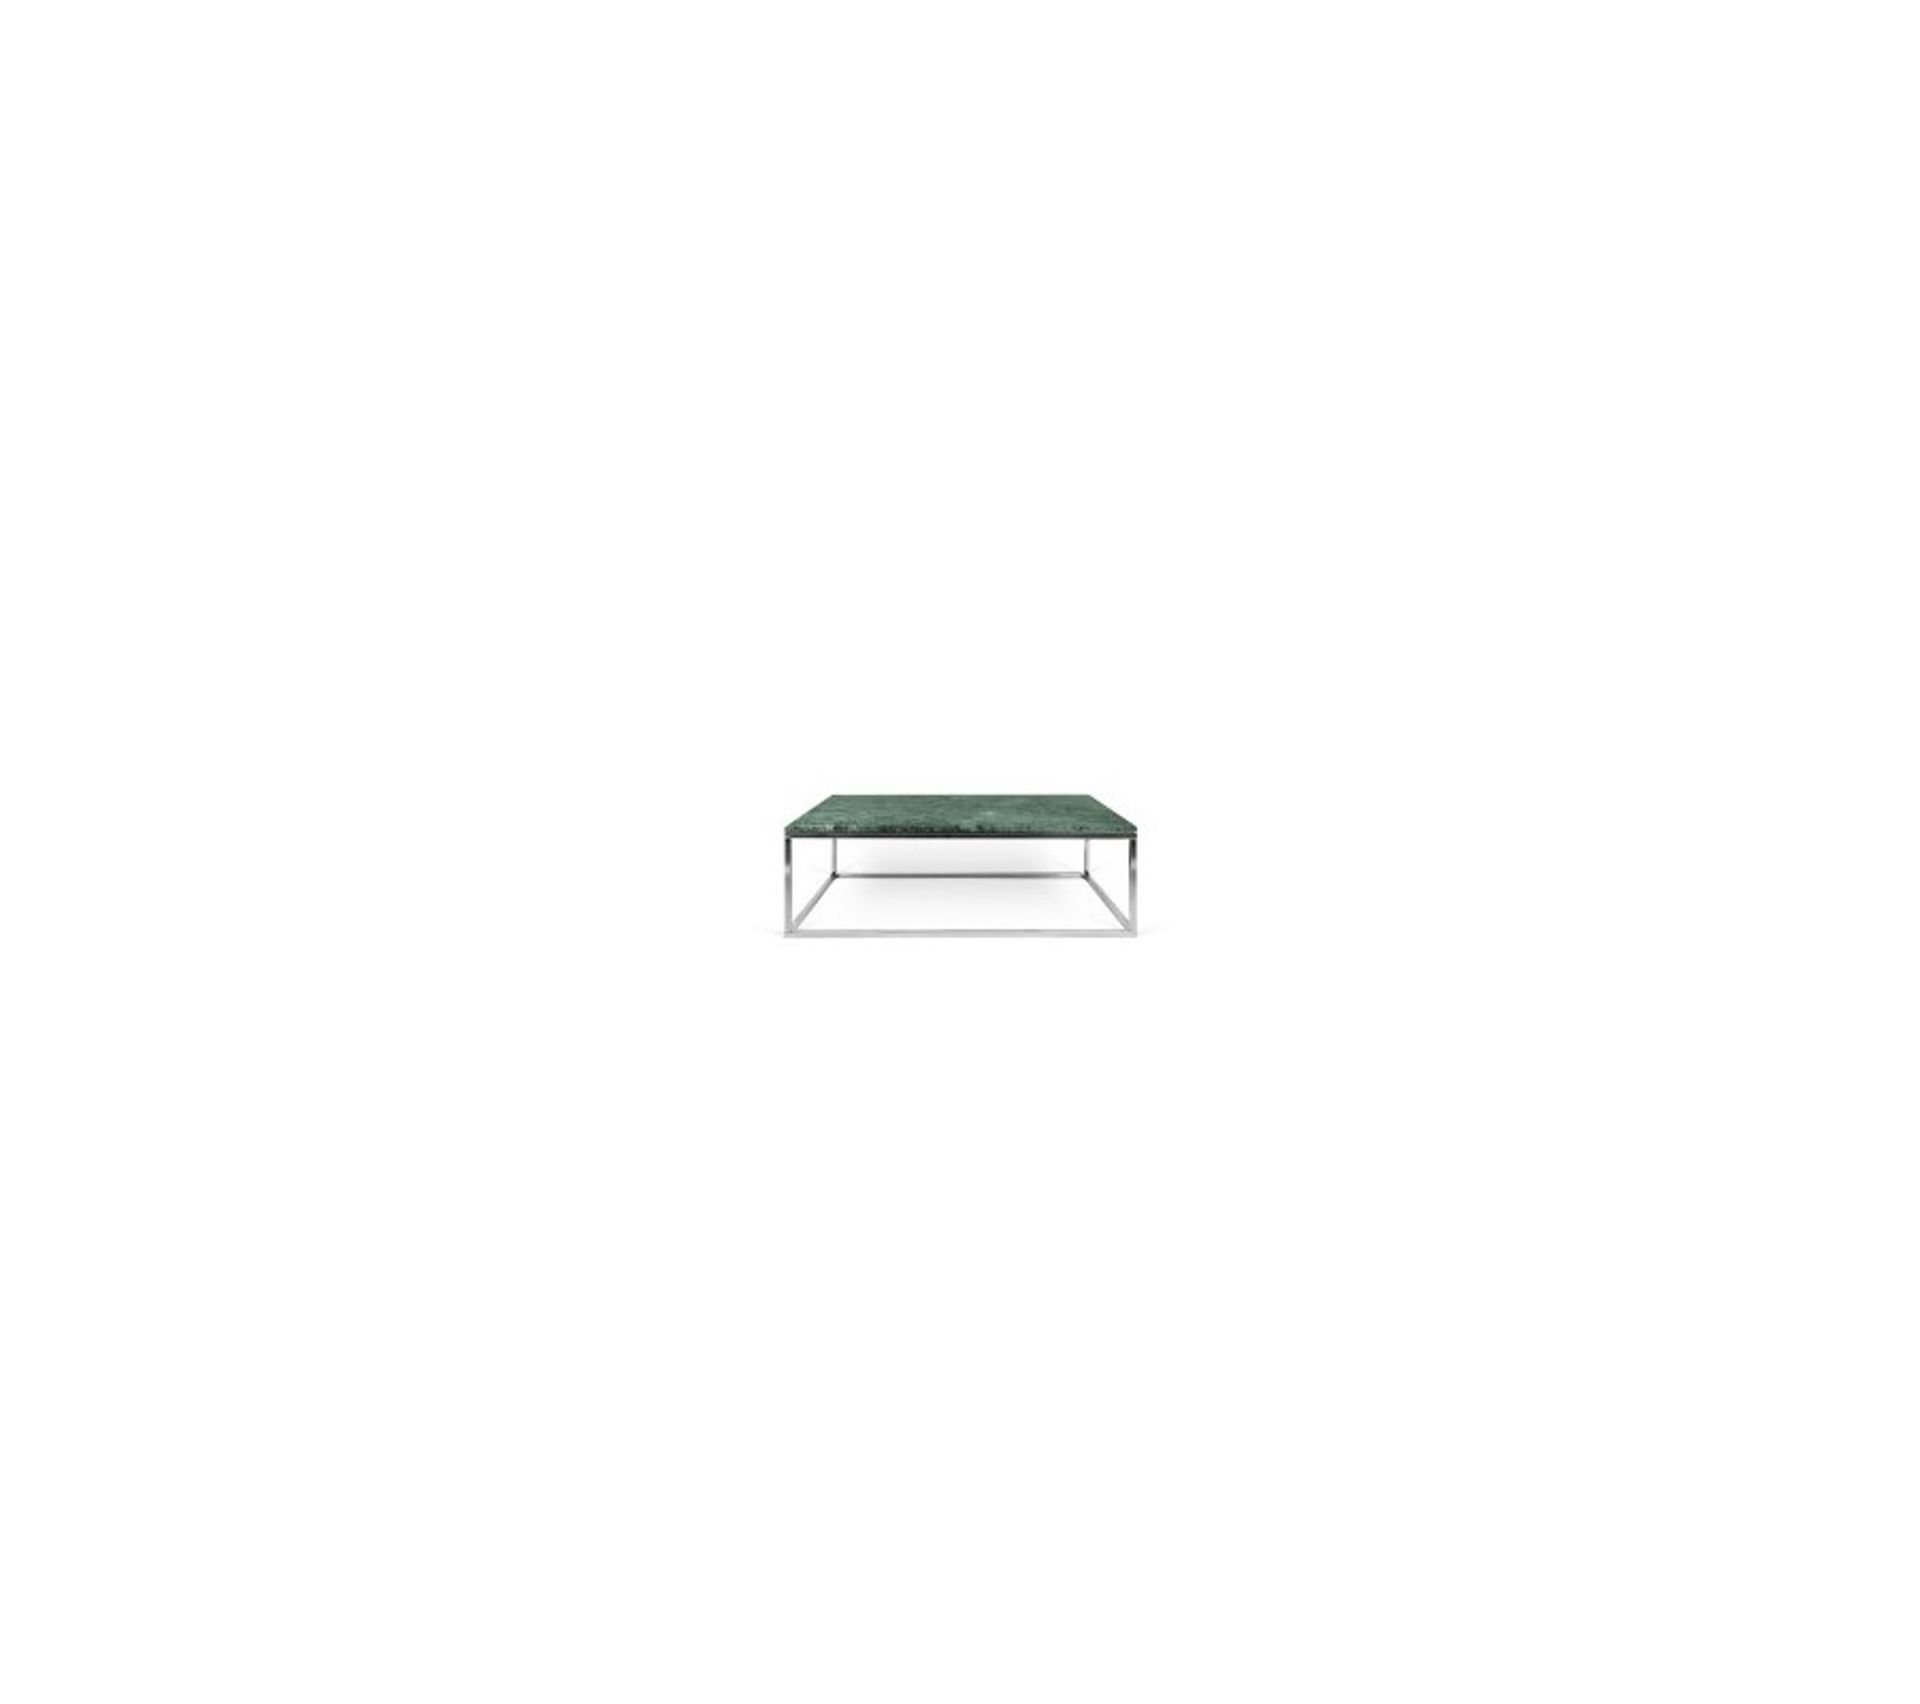 cm Temahome 120 Table Temahome Basse Table Basse c5jqR4A3L